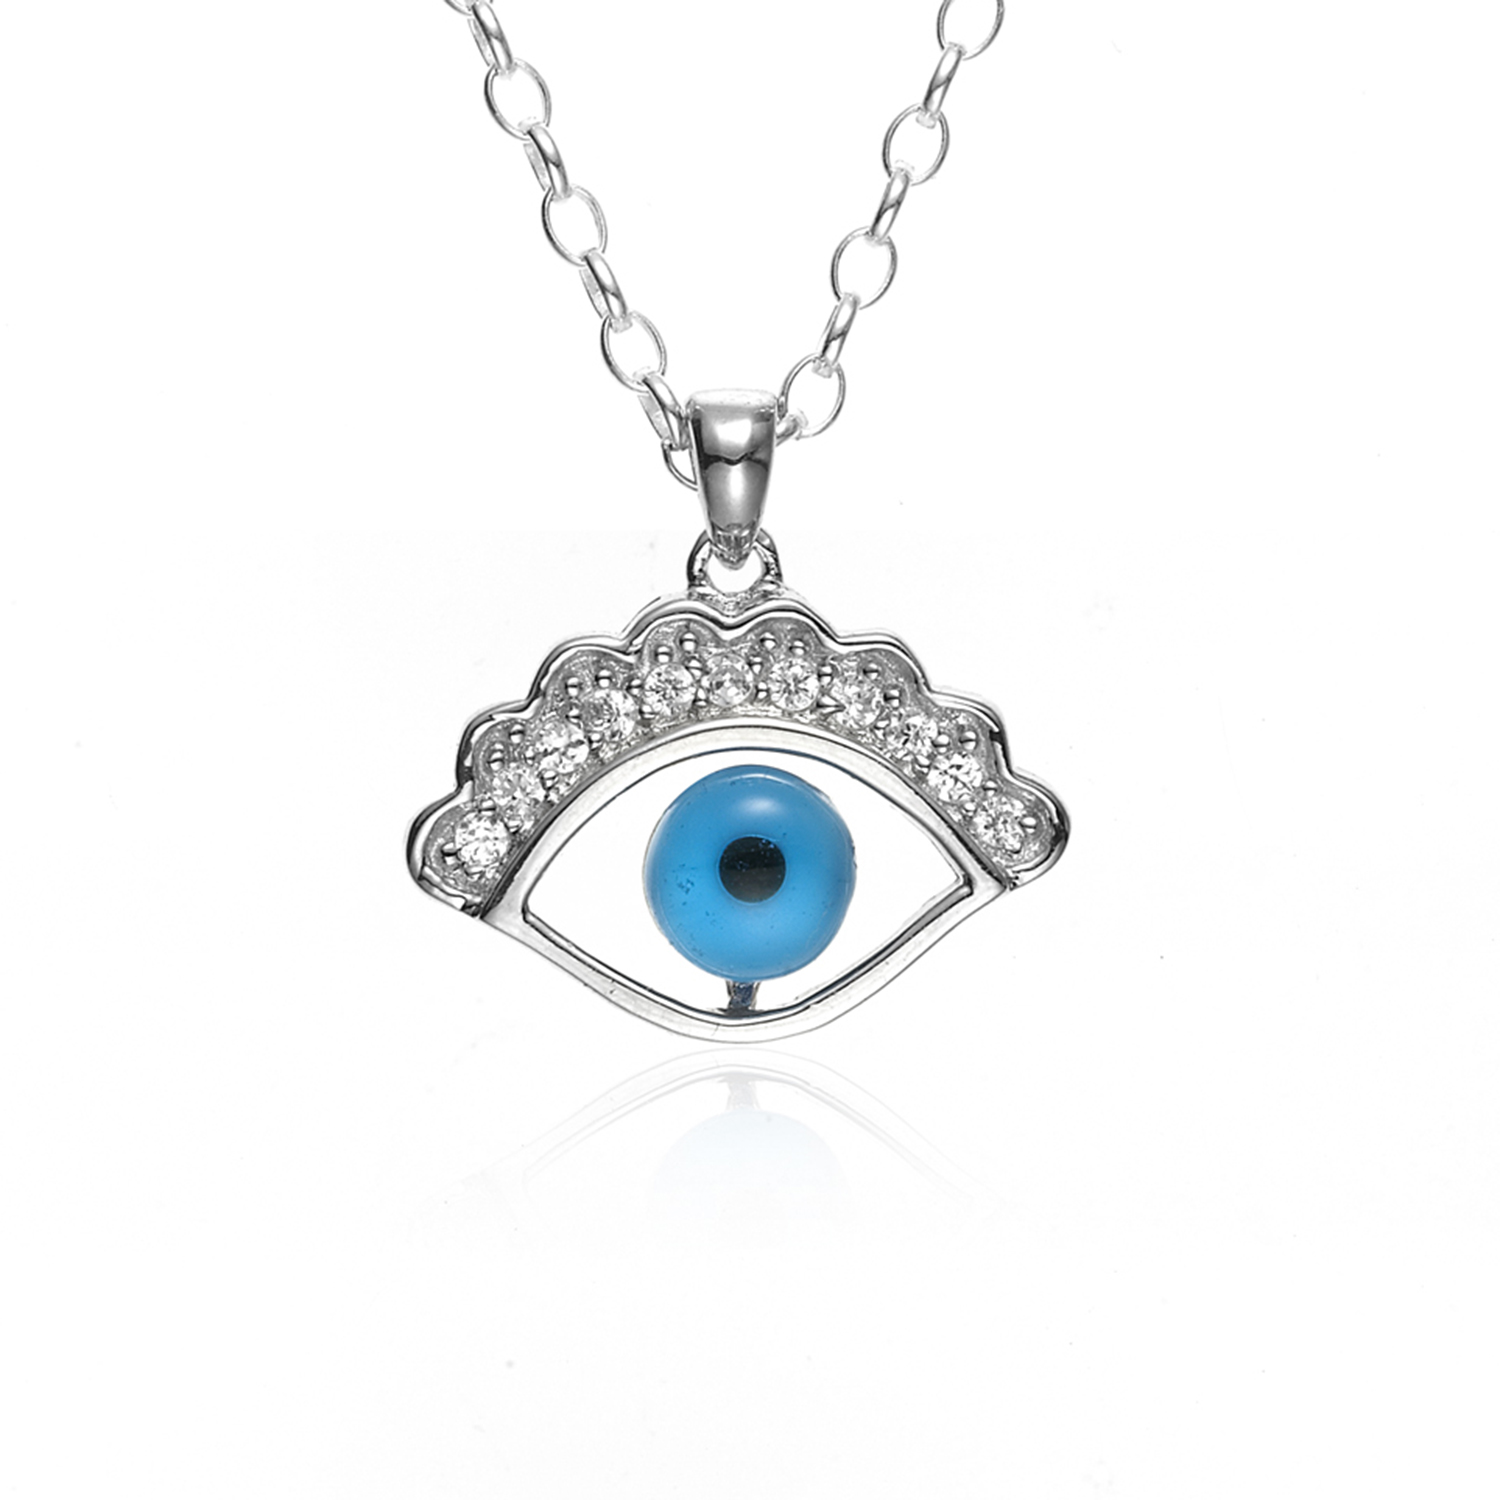 925 Sterling Silver Cubic Zirconia Blue Lapis Evil Eye Pendant Necklace with Rhodium Plated Chain